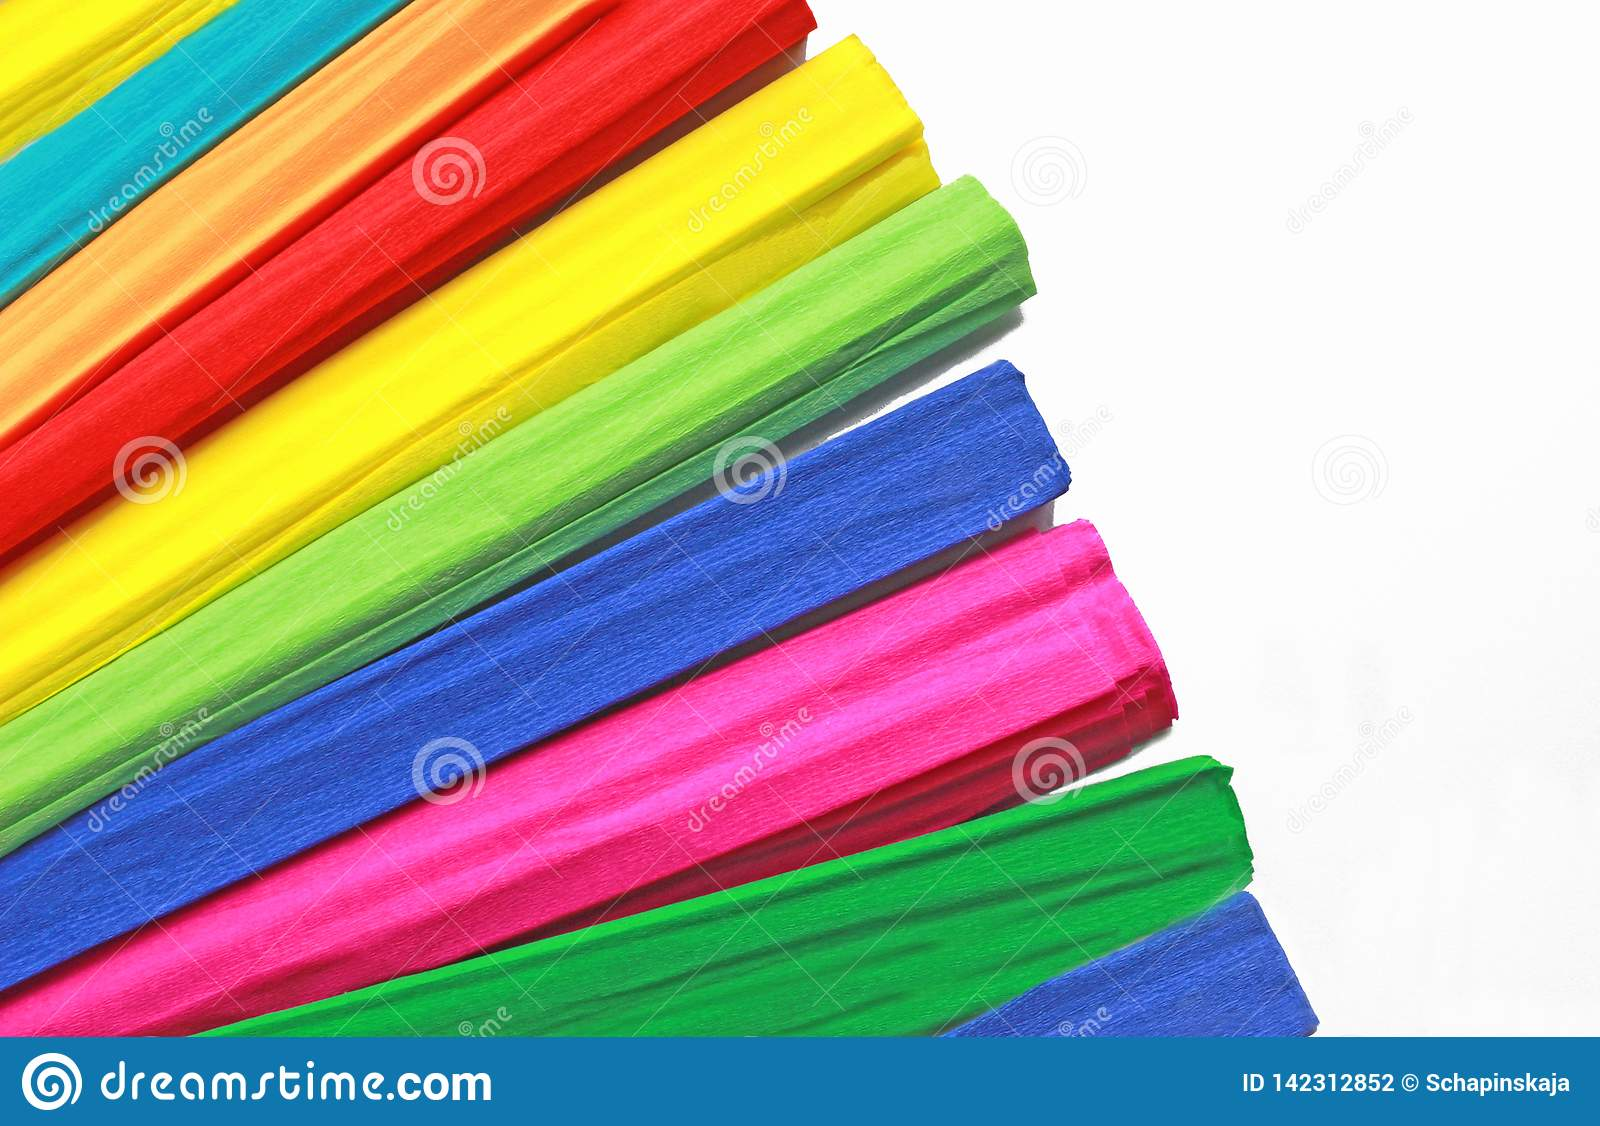 Multi colored rolls of crepe paper fanned out